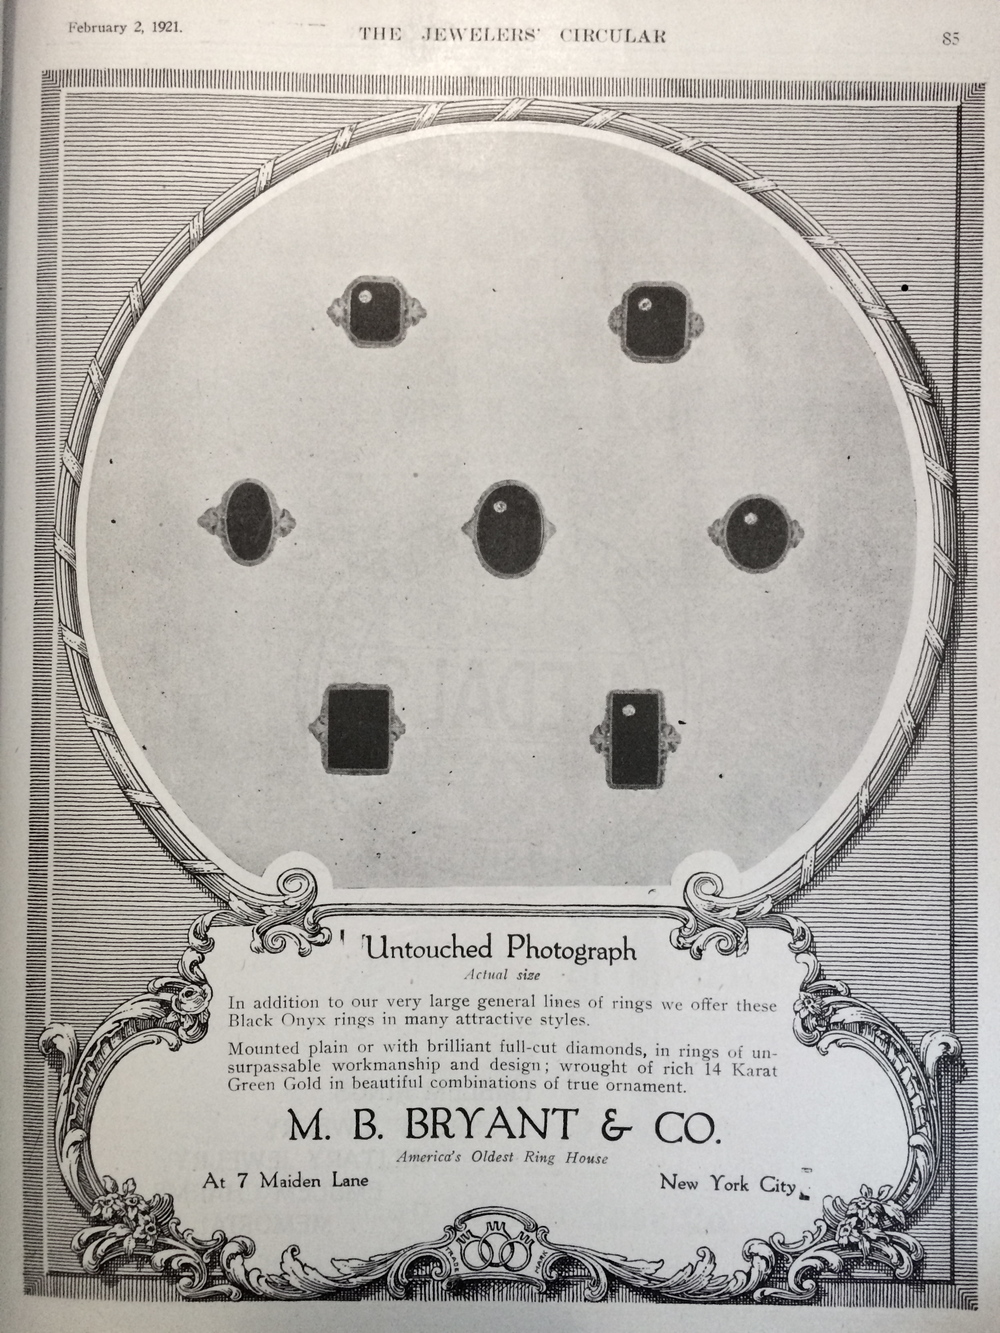 Early 1920s advertisement for the ring manufacturing company, M.B. Bryant & Co.